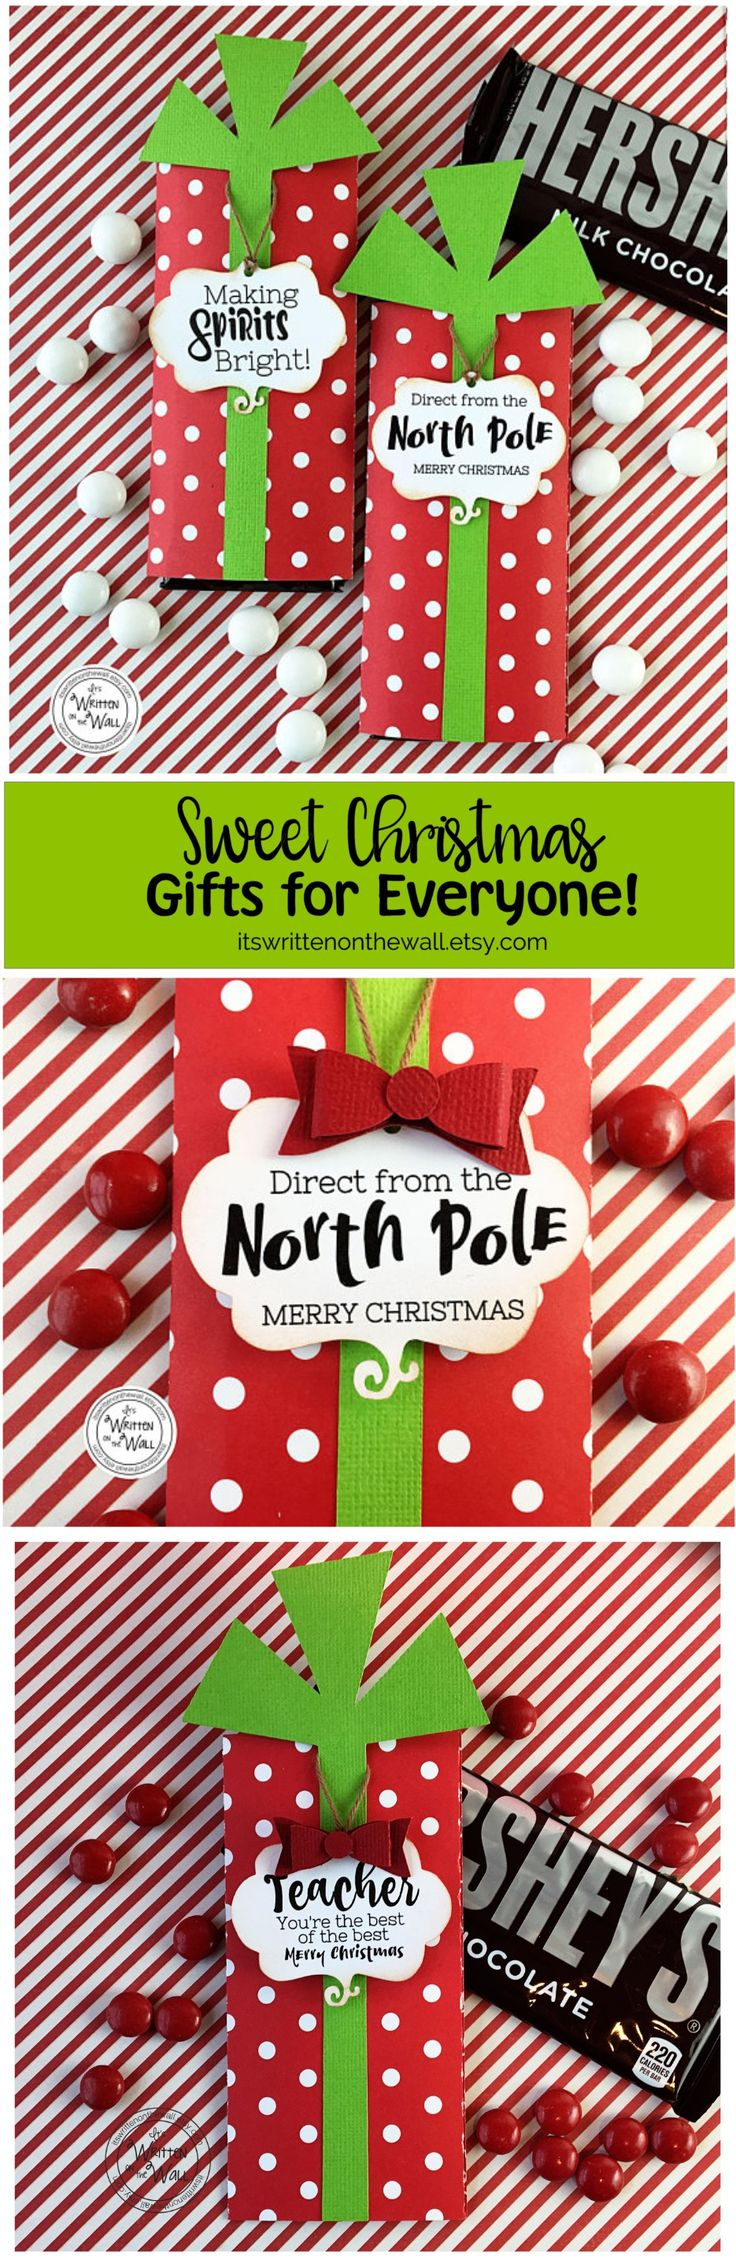 Wrap up a Hershey Bar for Co-Workers, Employees, Stocking Stuffers, Teachers, Party favors and more